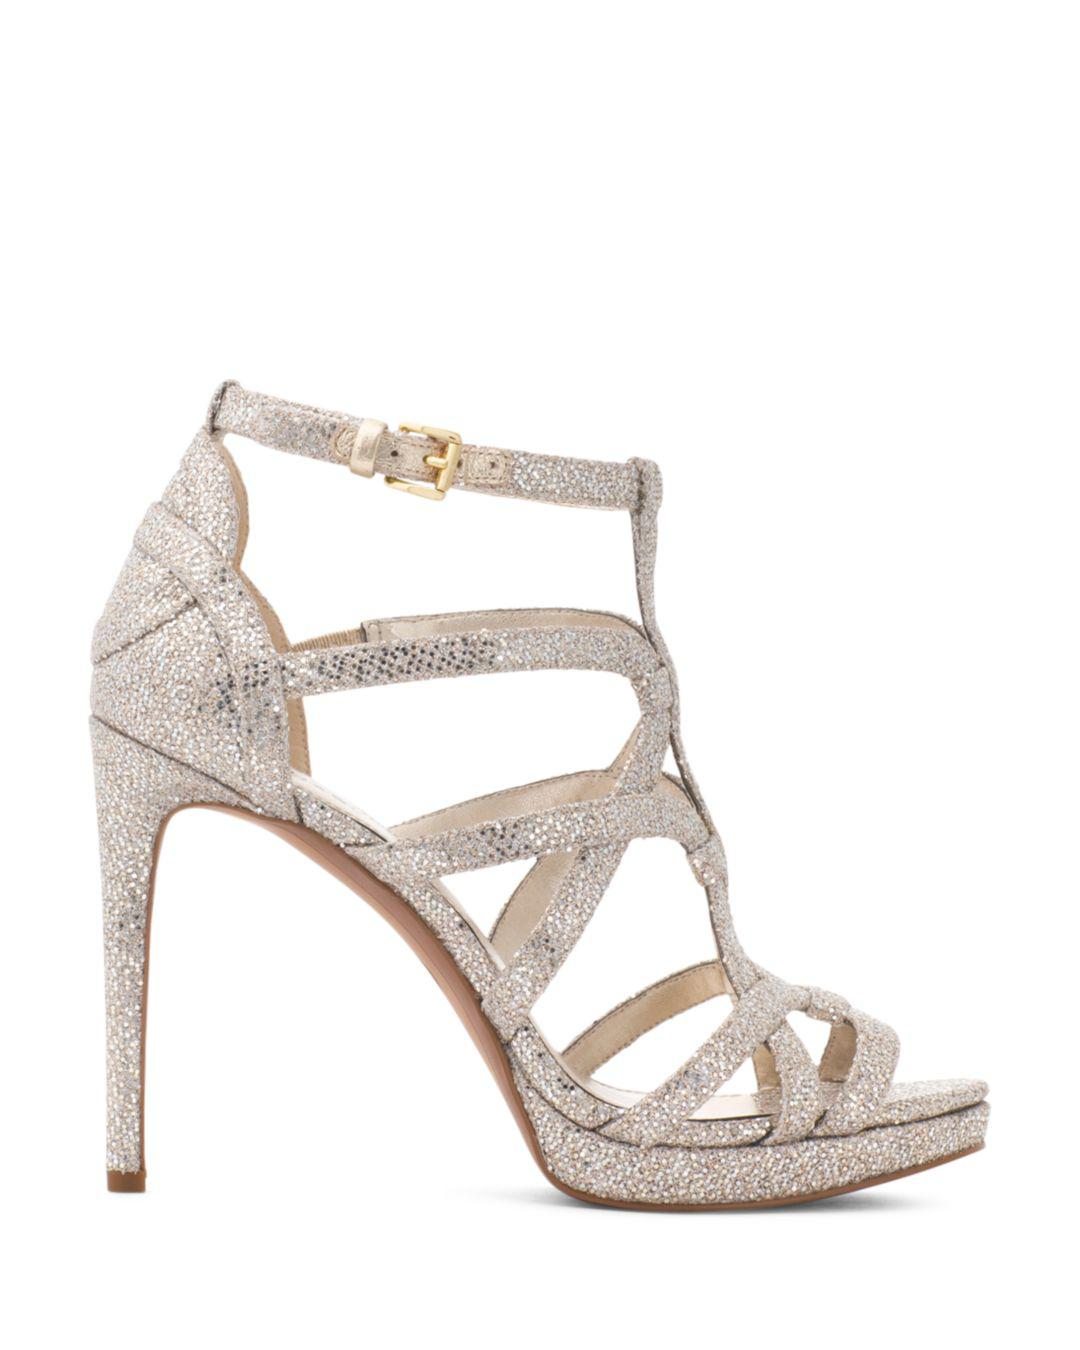 280c7770be1 MICHAEL Michael Kors Women s Sandra Strappy Leather Platform High-heel  Sandals in Metallic - Lyst